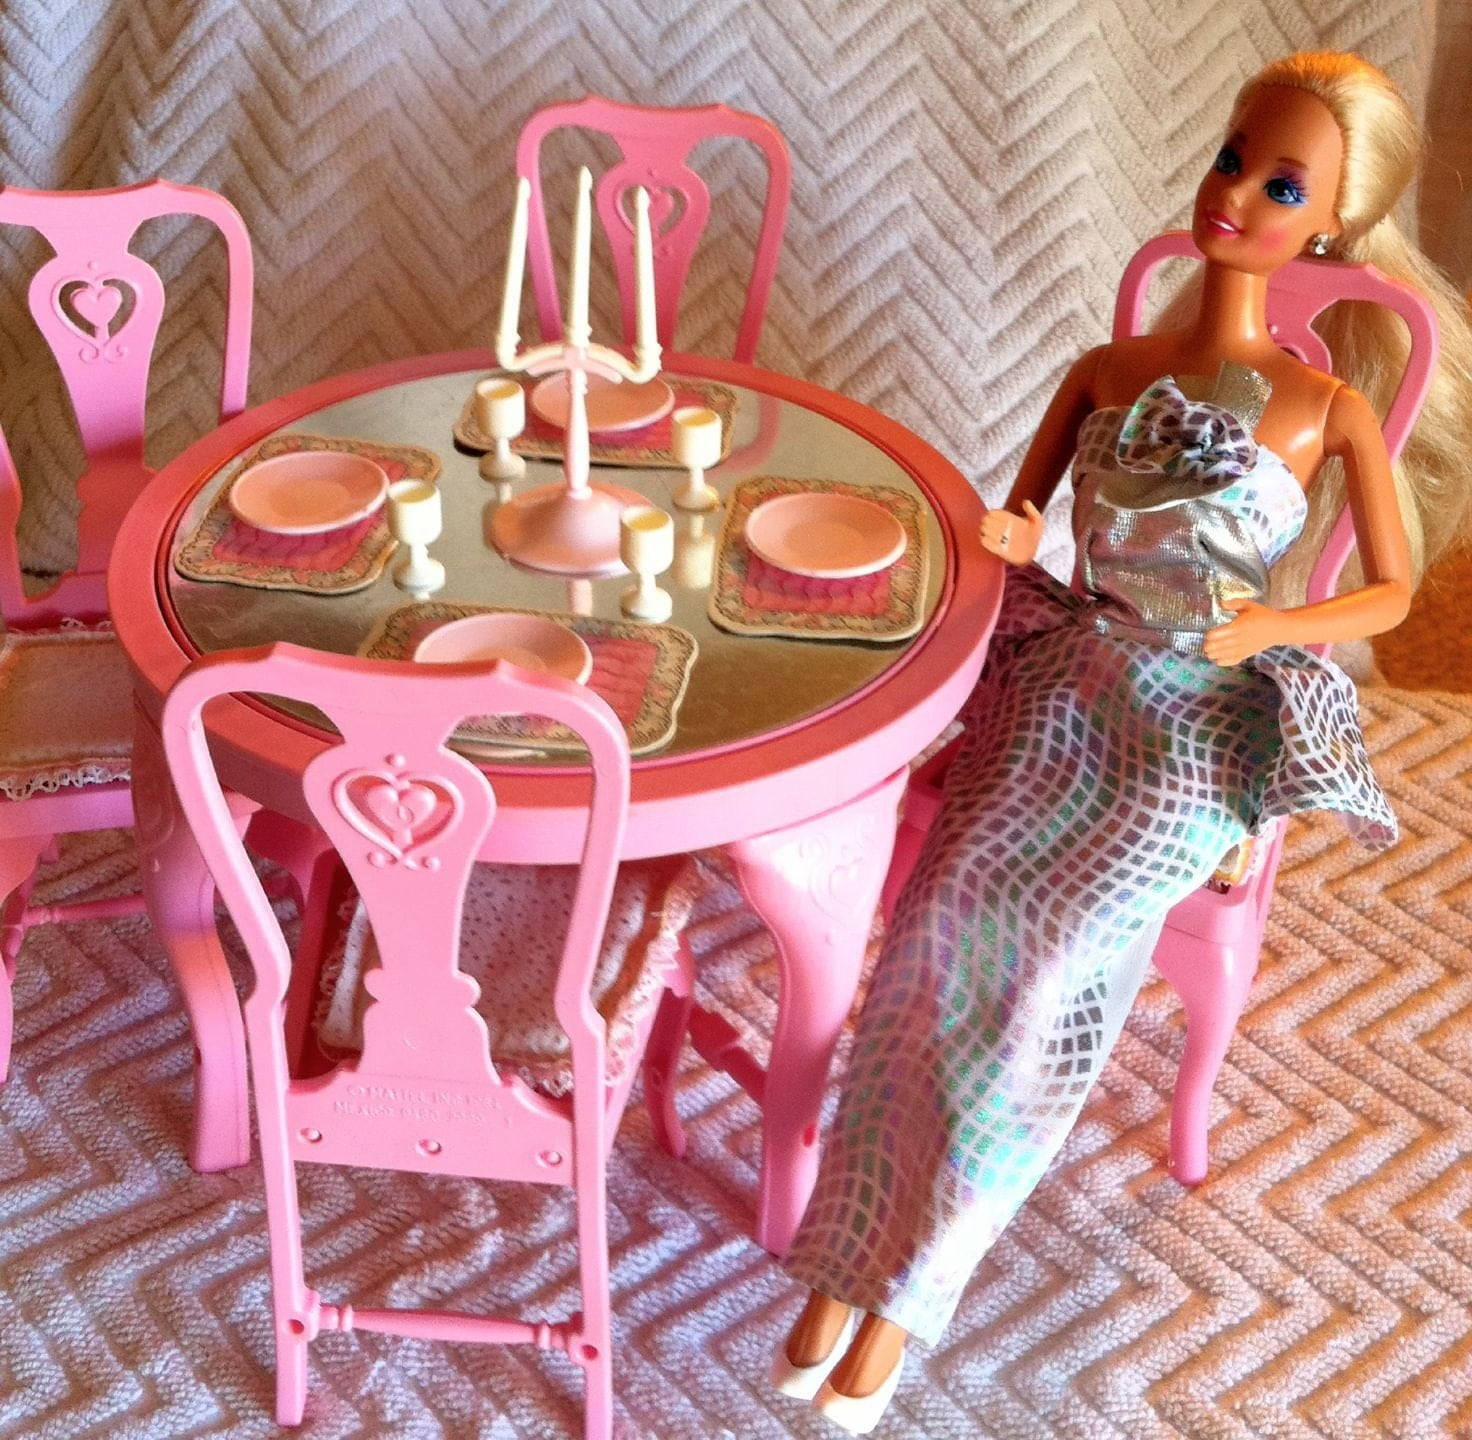 Vintage Barbies 1987 Dinning Room Set Part by  : ilfullxfull368815324g5lv from www.etsy.com size 1472 x 1440 jpeg 524kB